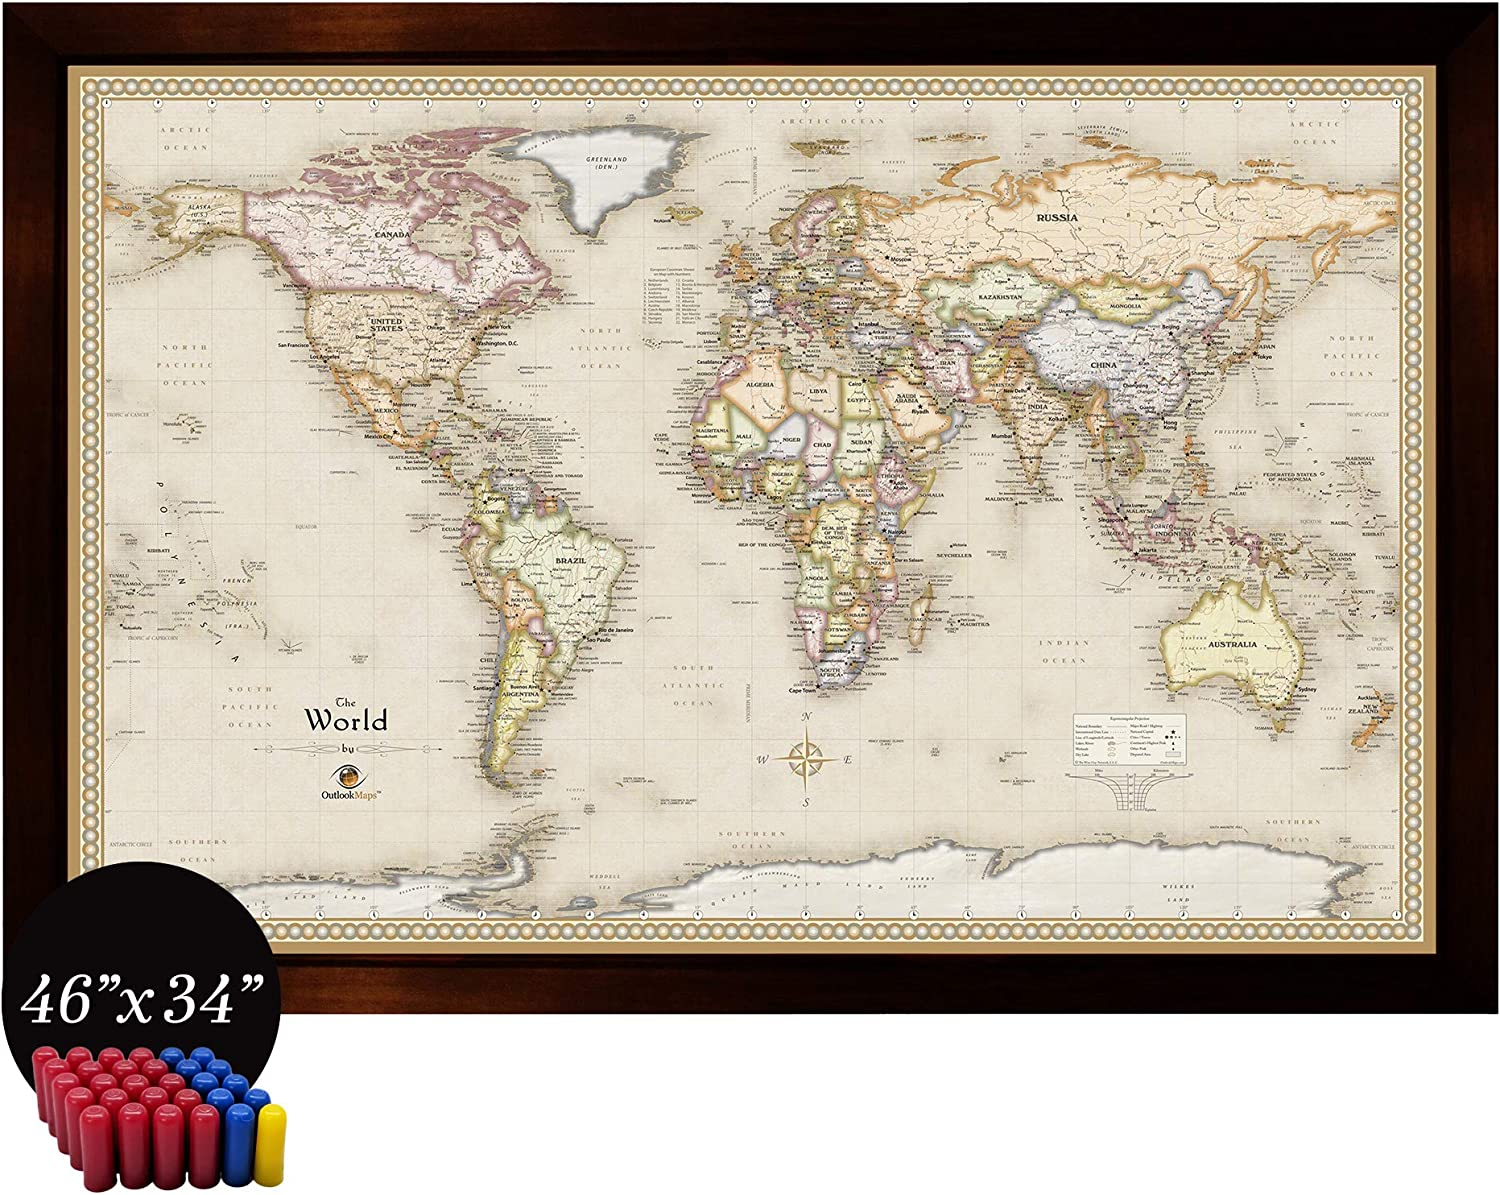 Home Magnetics Interactive World Map Art | Framed Magnetic Geographic Map | 30 Marker Pins Included (46x34)